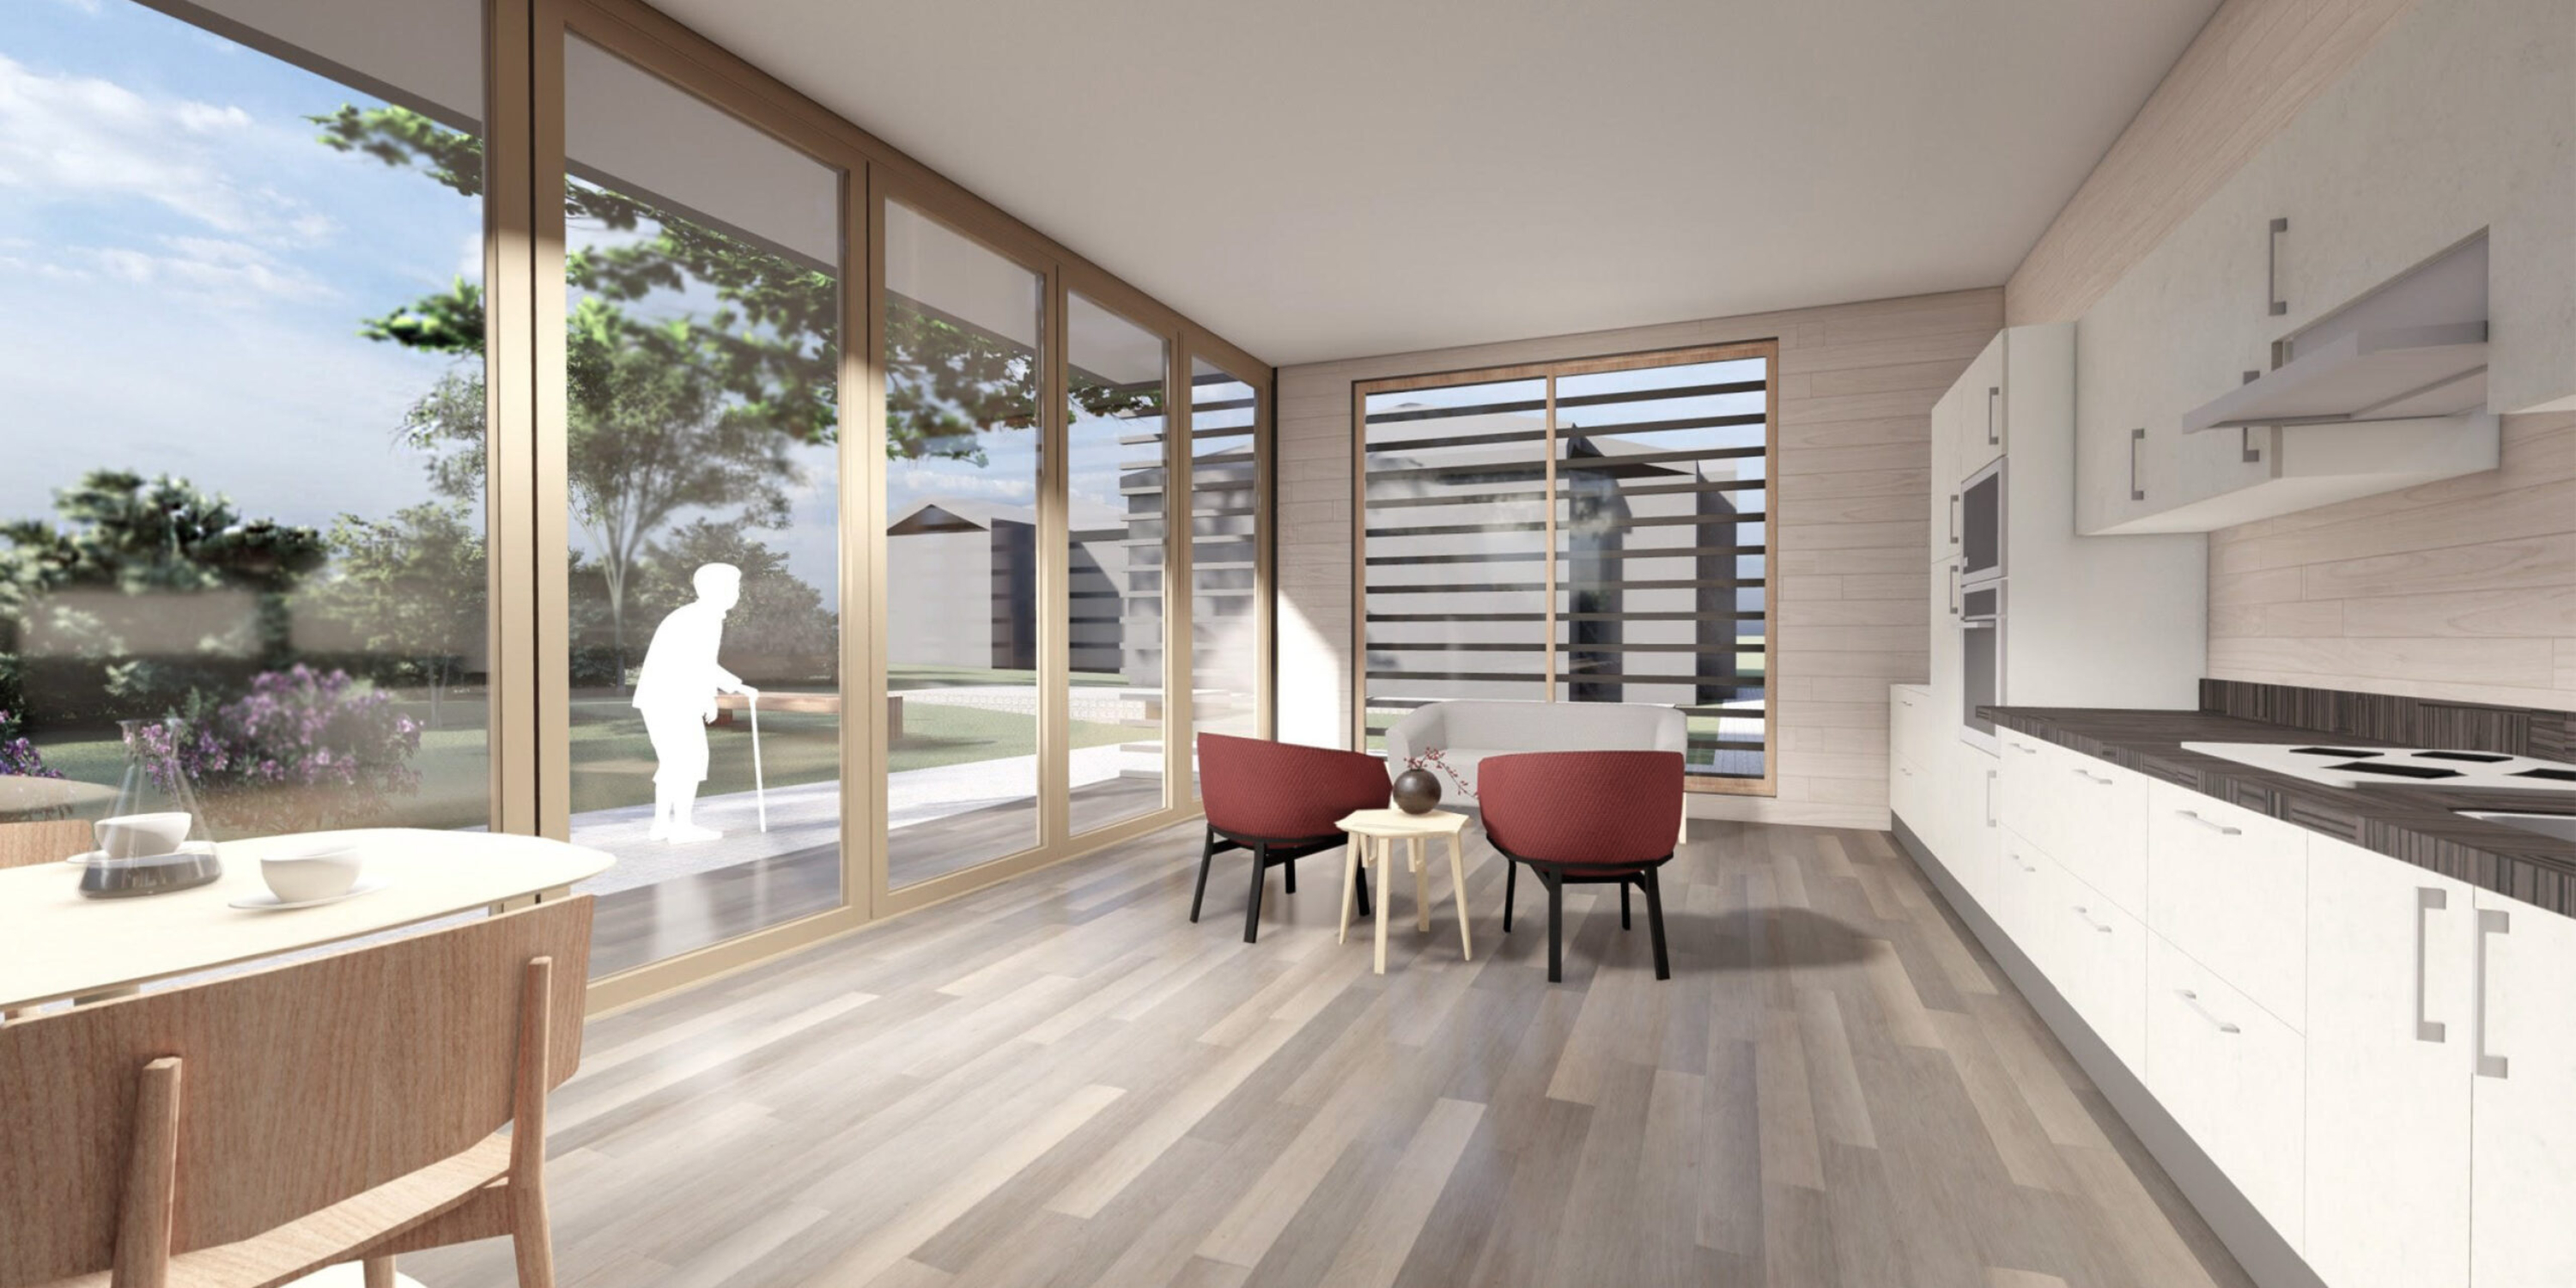 Forough Mofidi_ADU_Interior Render